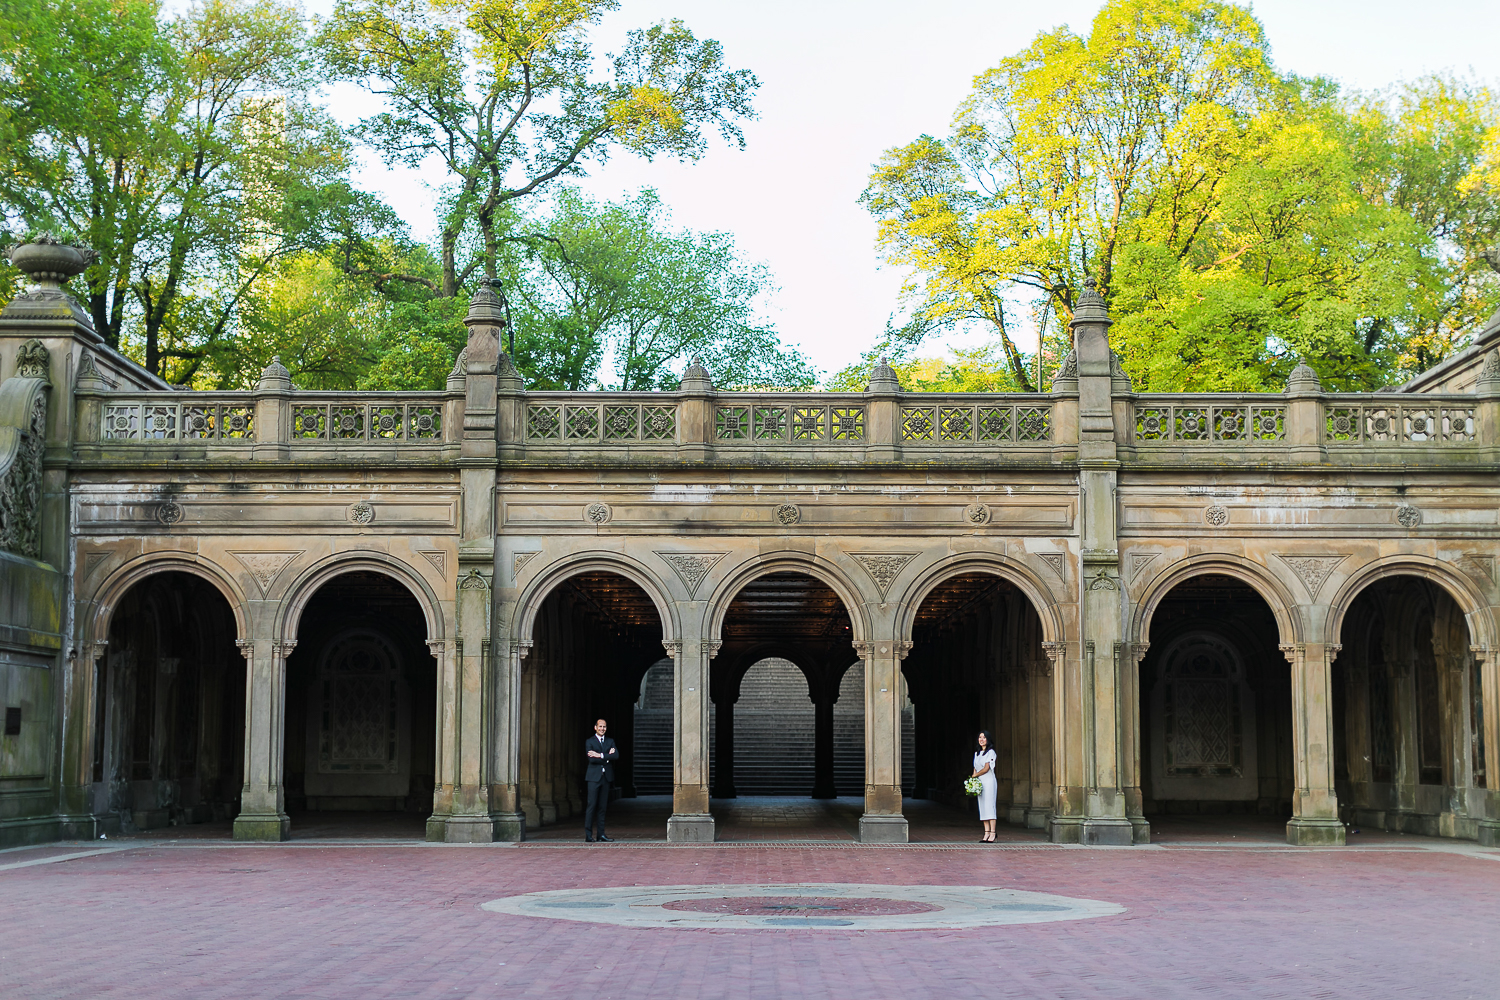 Bride and groom taking wedding photos at Bethesda Terrace in Central Park. | Early Morning Sunrise Central Park Elopement in New York City.